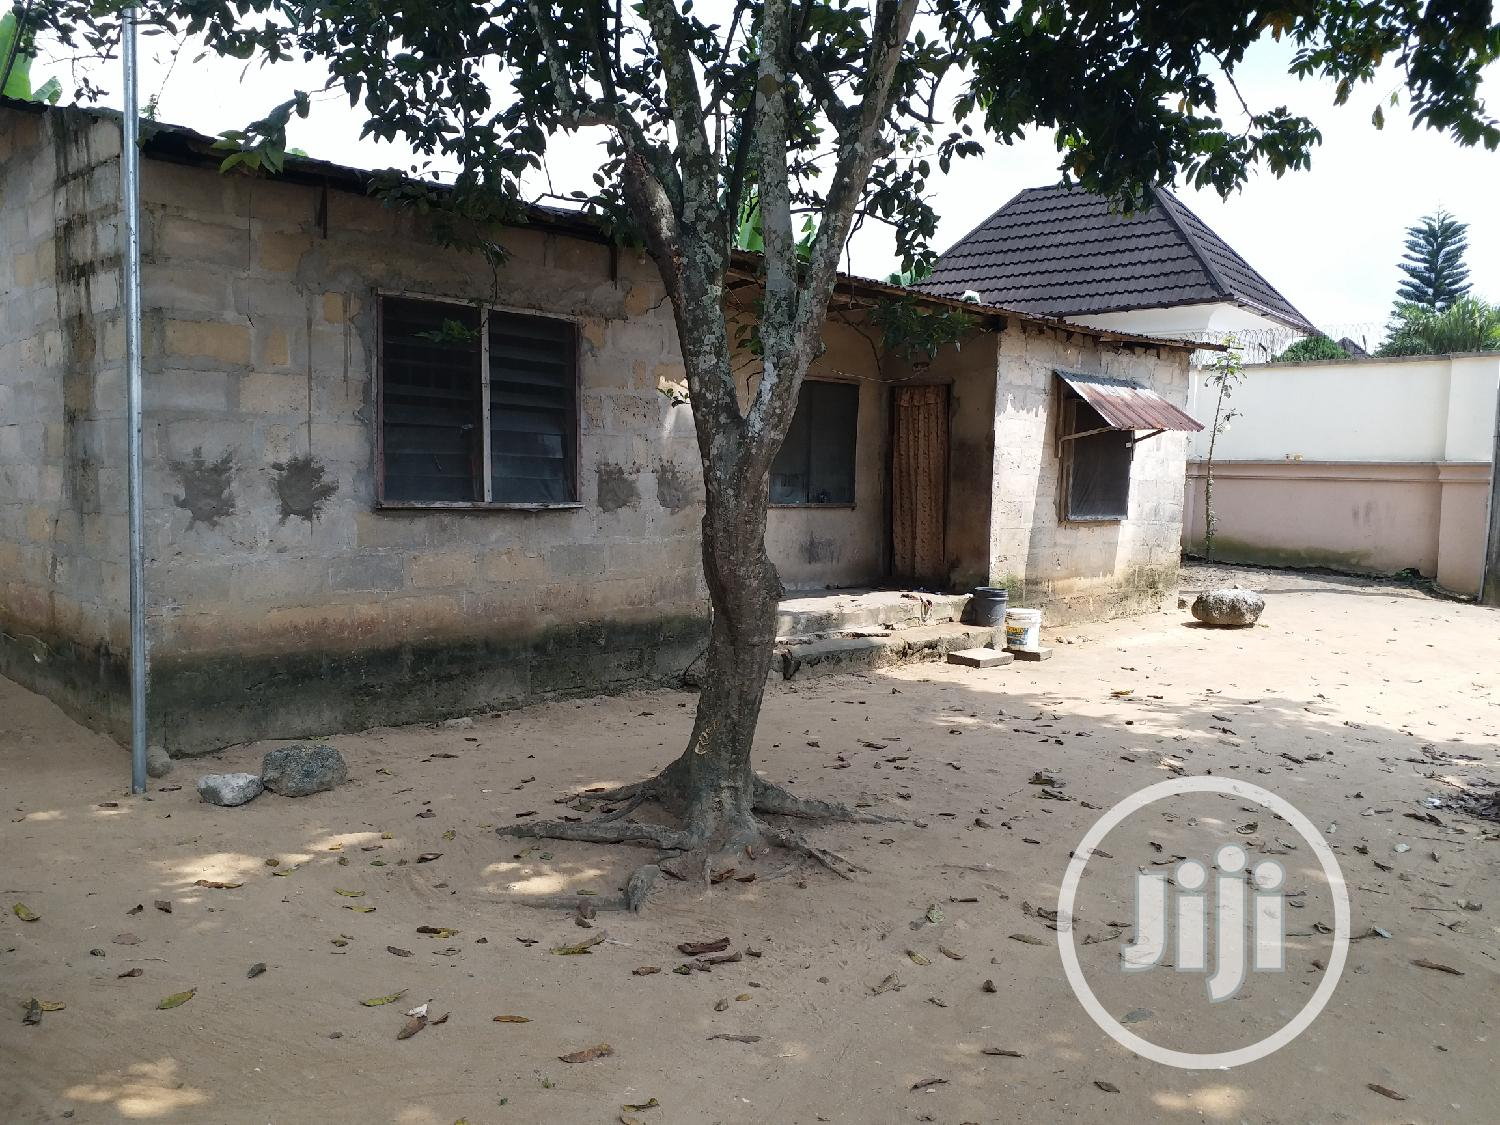 Archive: For Sale: Landed Property